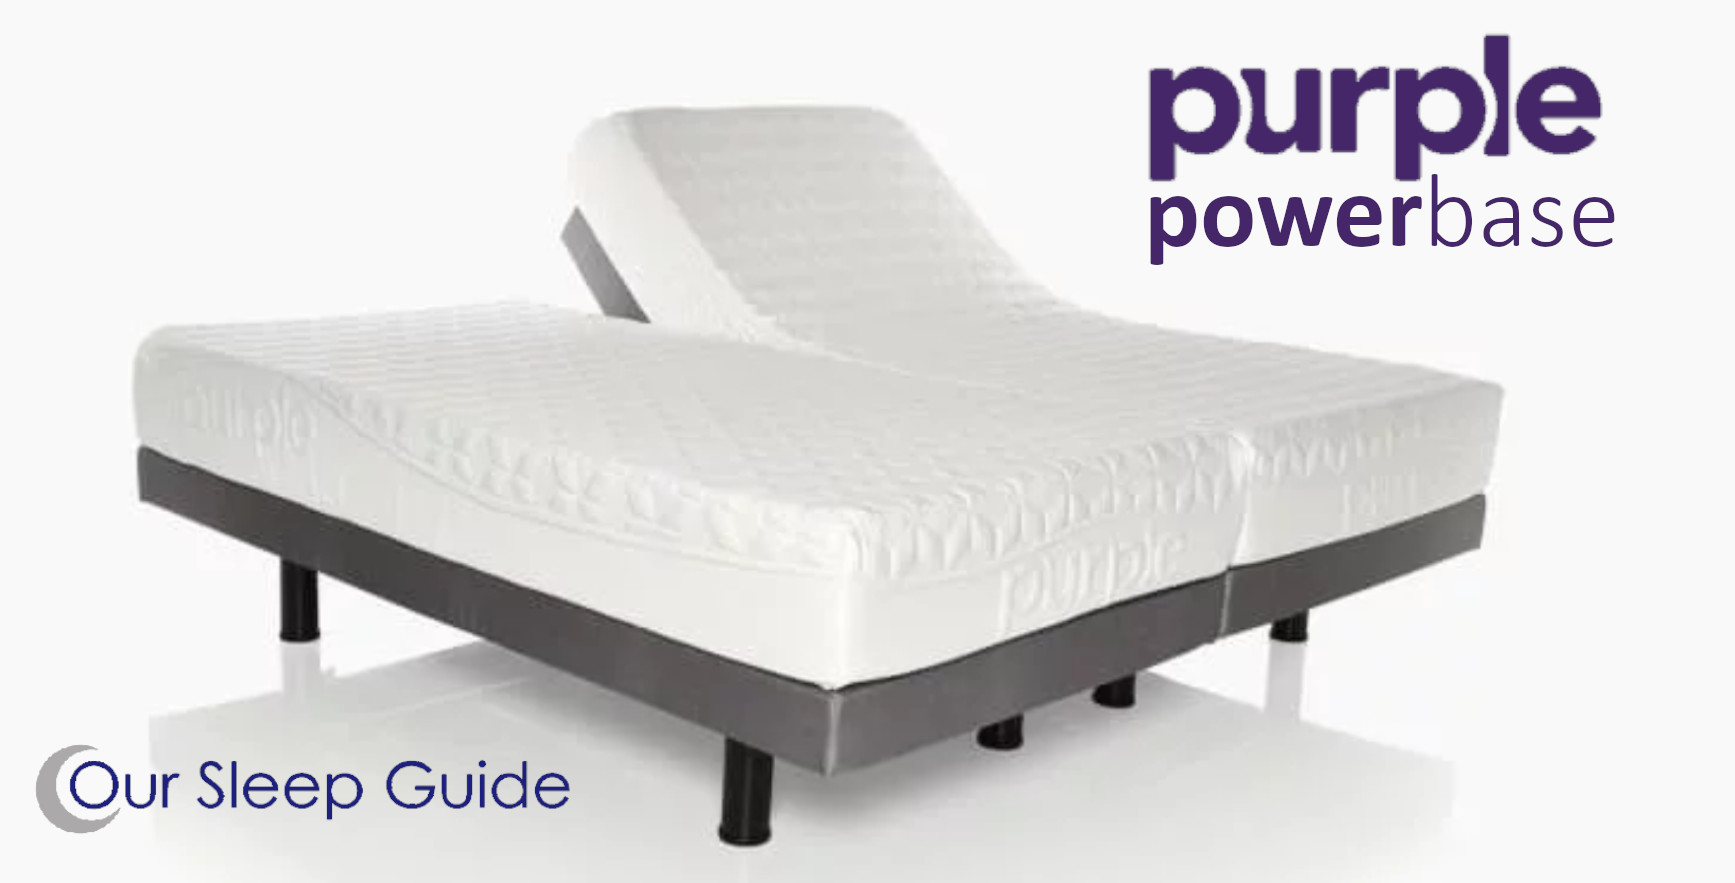 the powerbase by purple review